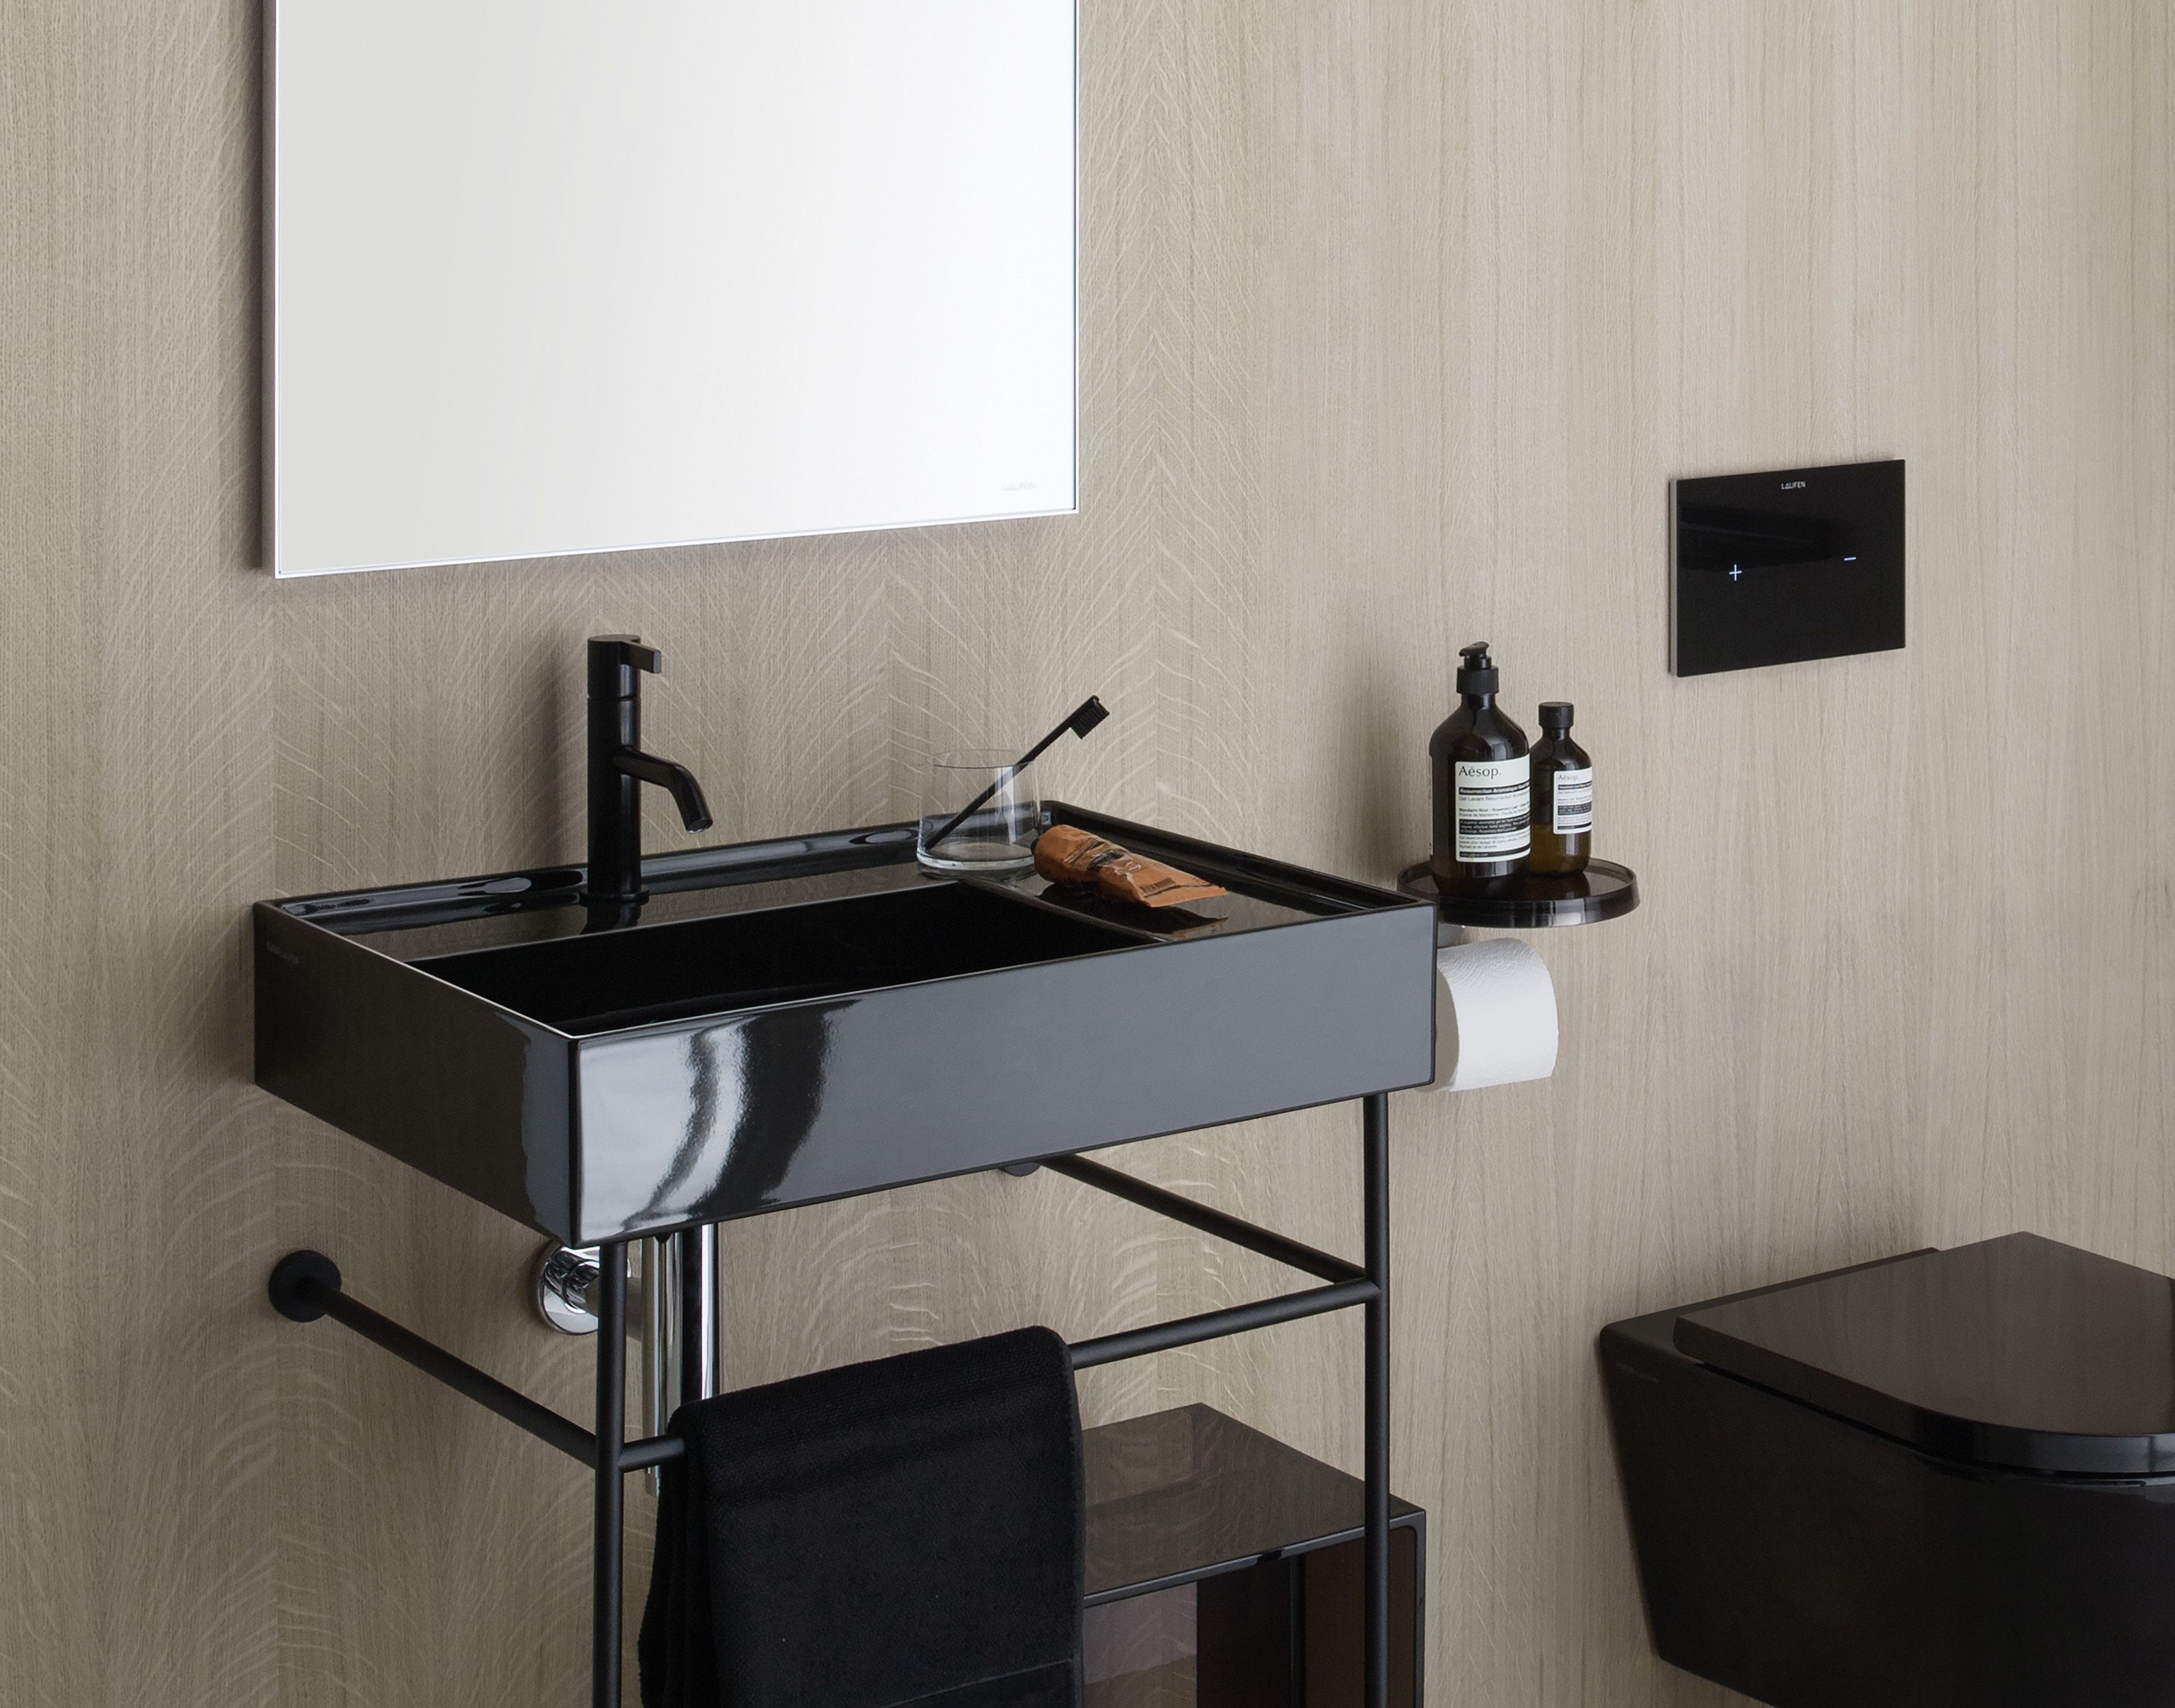 Black in the bathroom? The new Kartell by Laufen washbasin with towel rail (also available in chrome) Read more: http://www.ish.laufen.com/LAUFEN_ISH_EN/en_eng/sa_ish/sa_products/